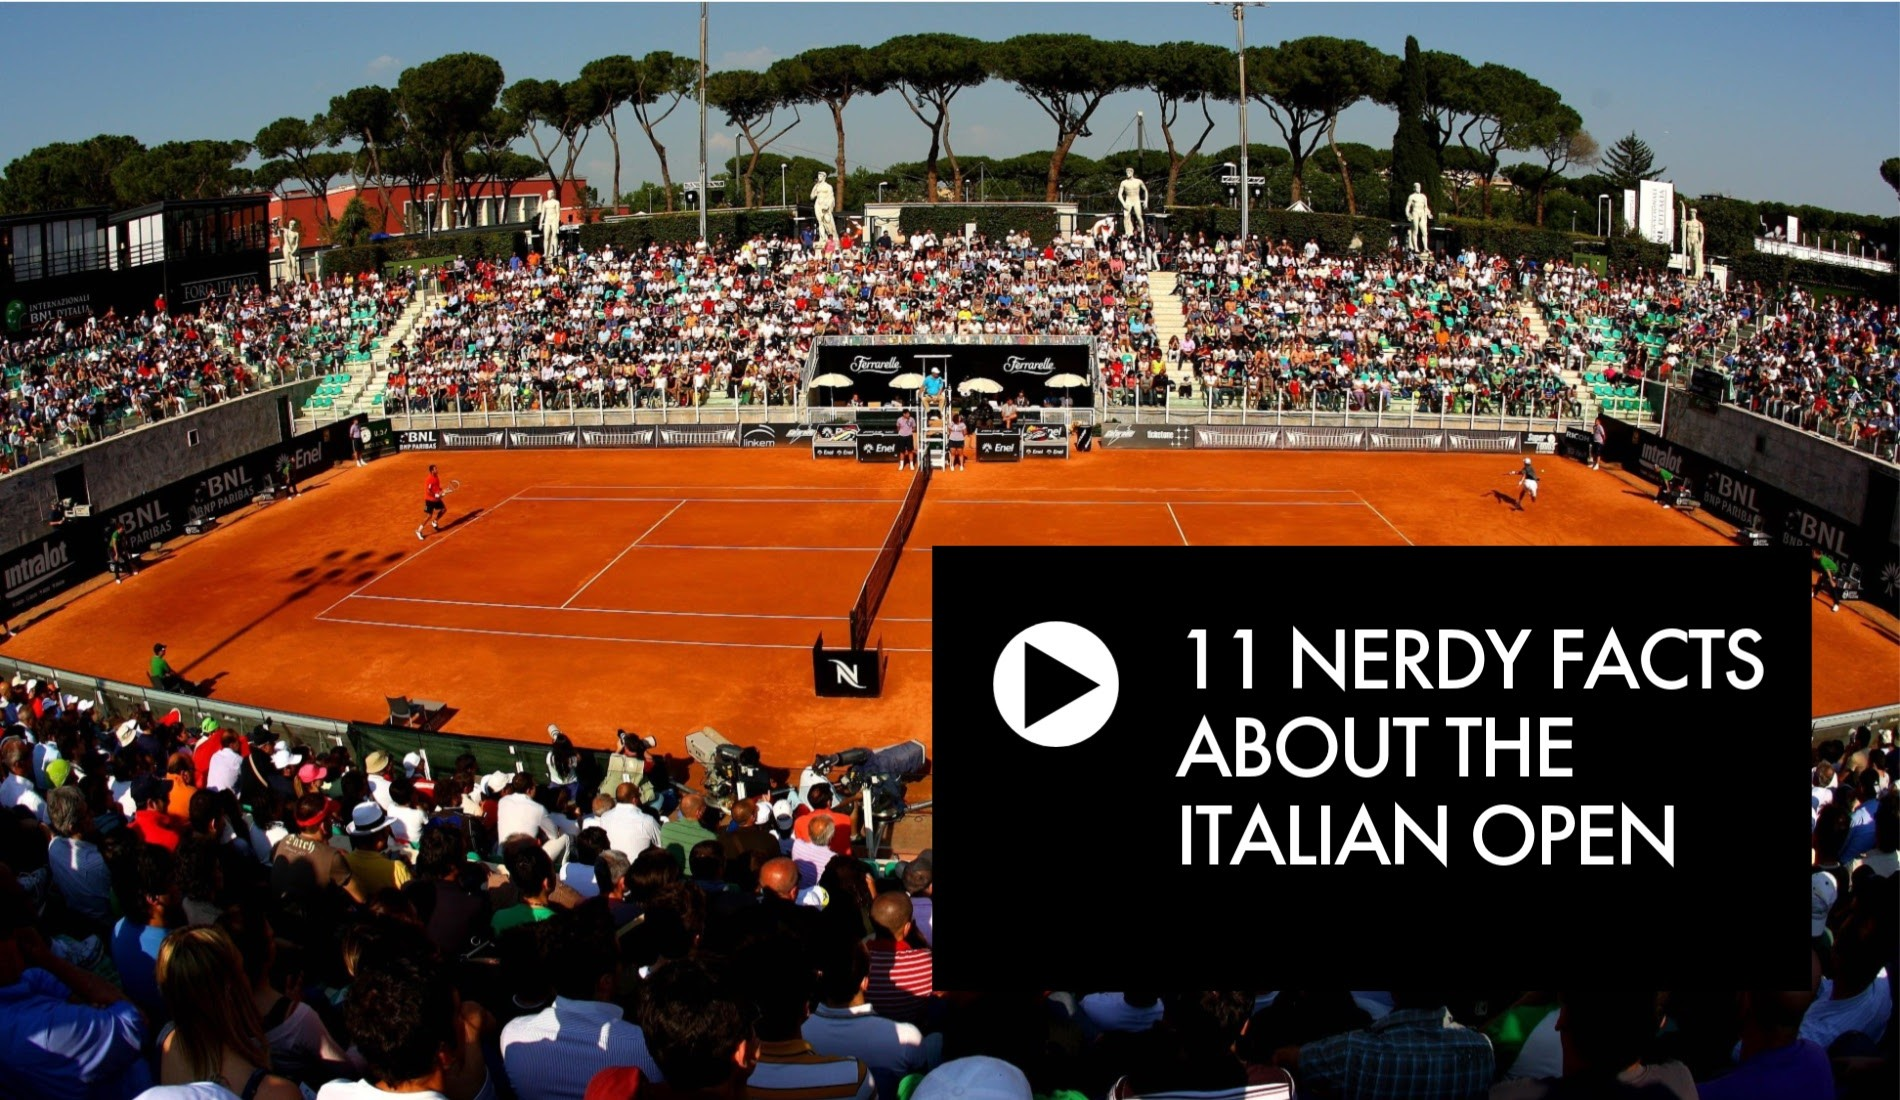 Check out our 11 nerdy facts about the Italian Open